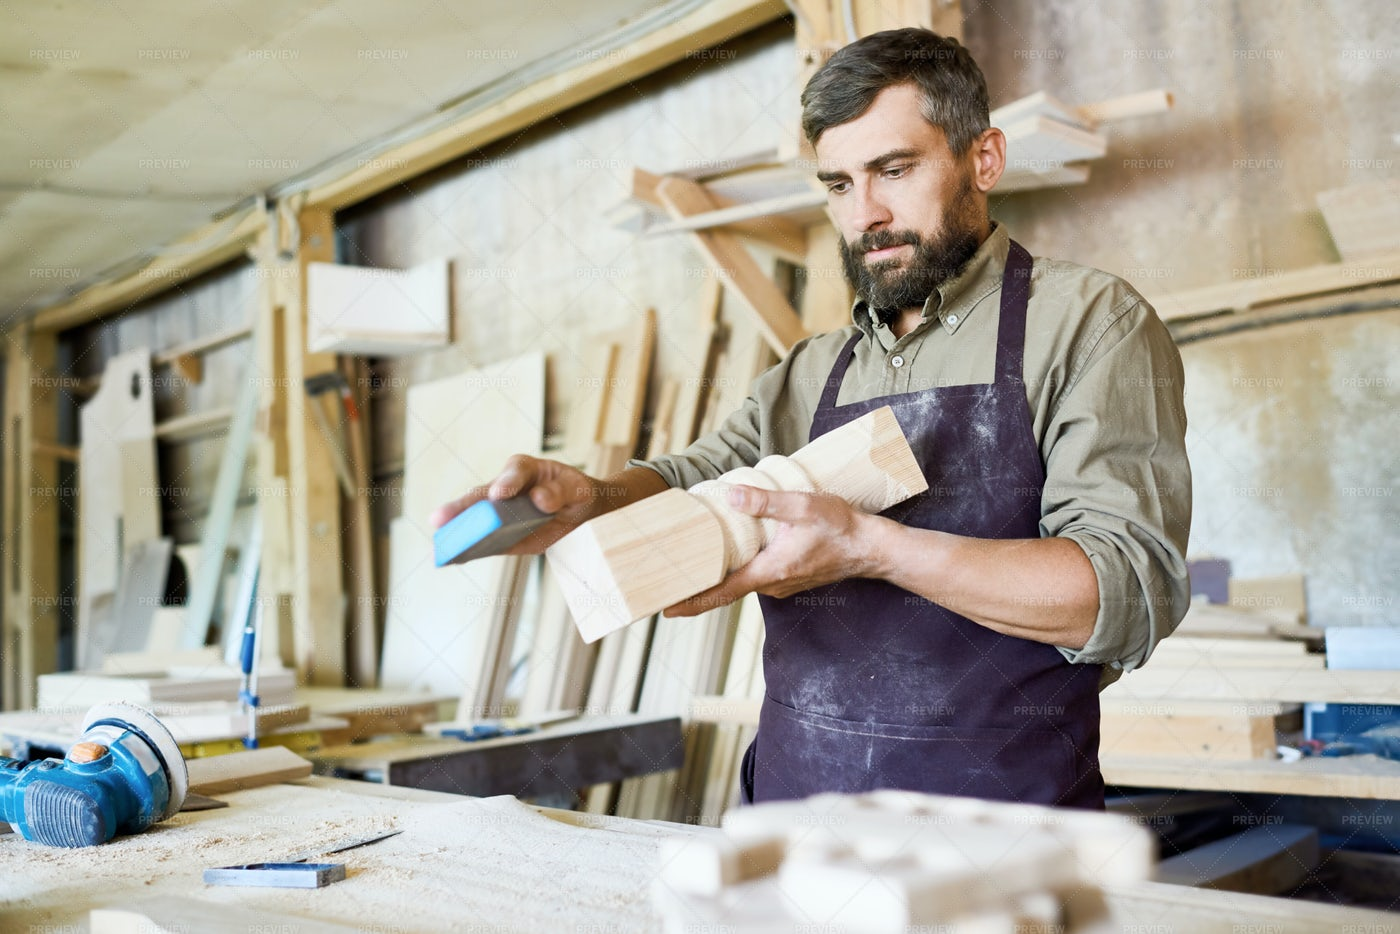 Bearded Craftsman Wrapped Up In...: Stock Photos